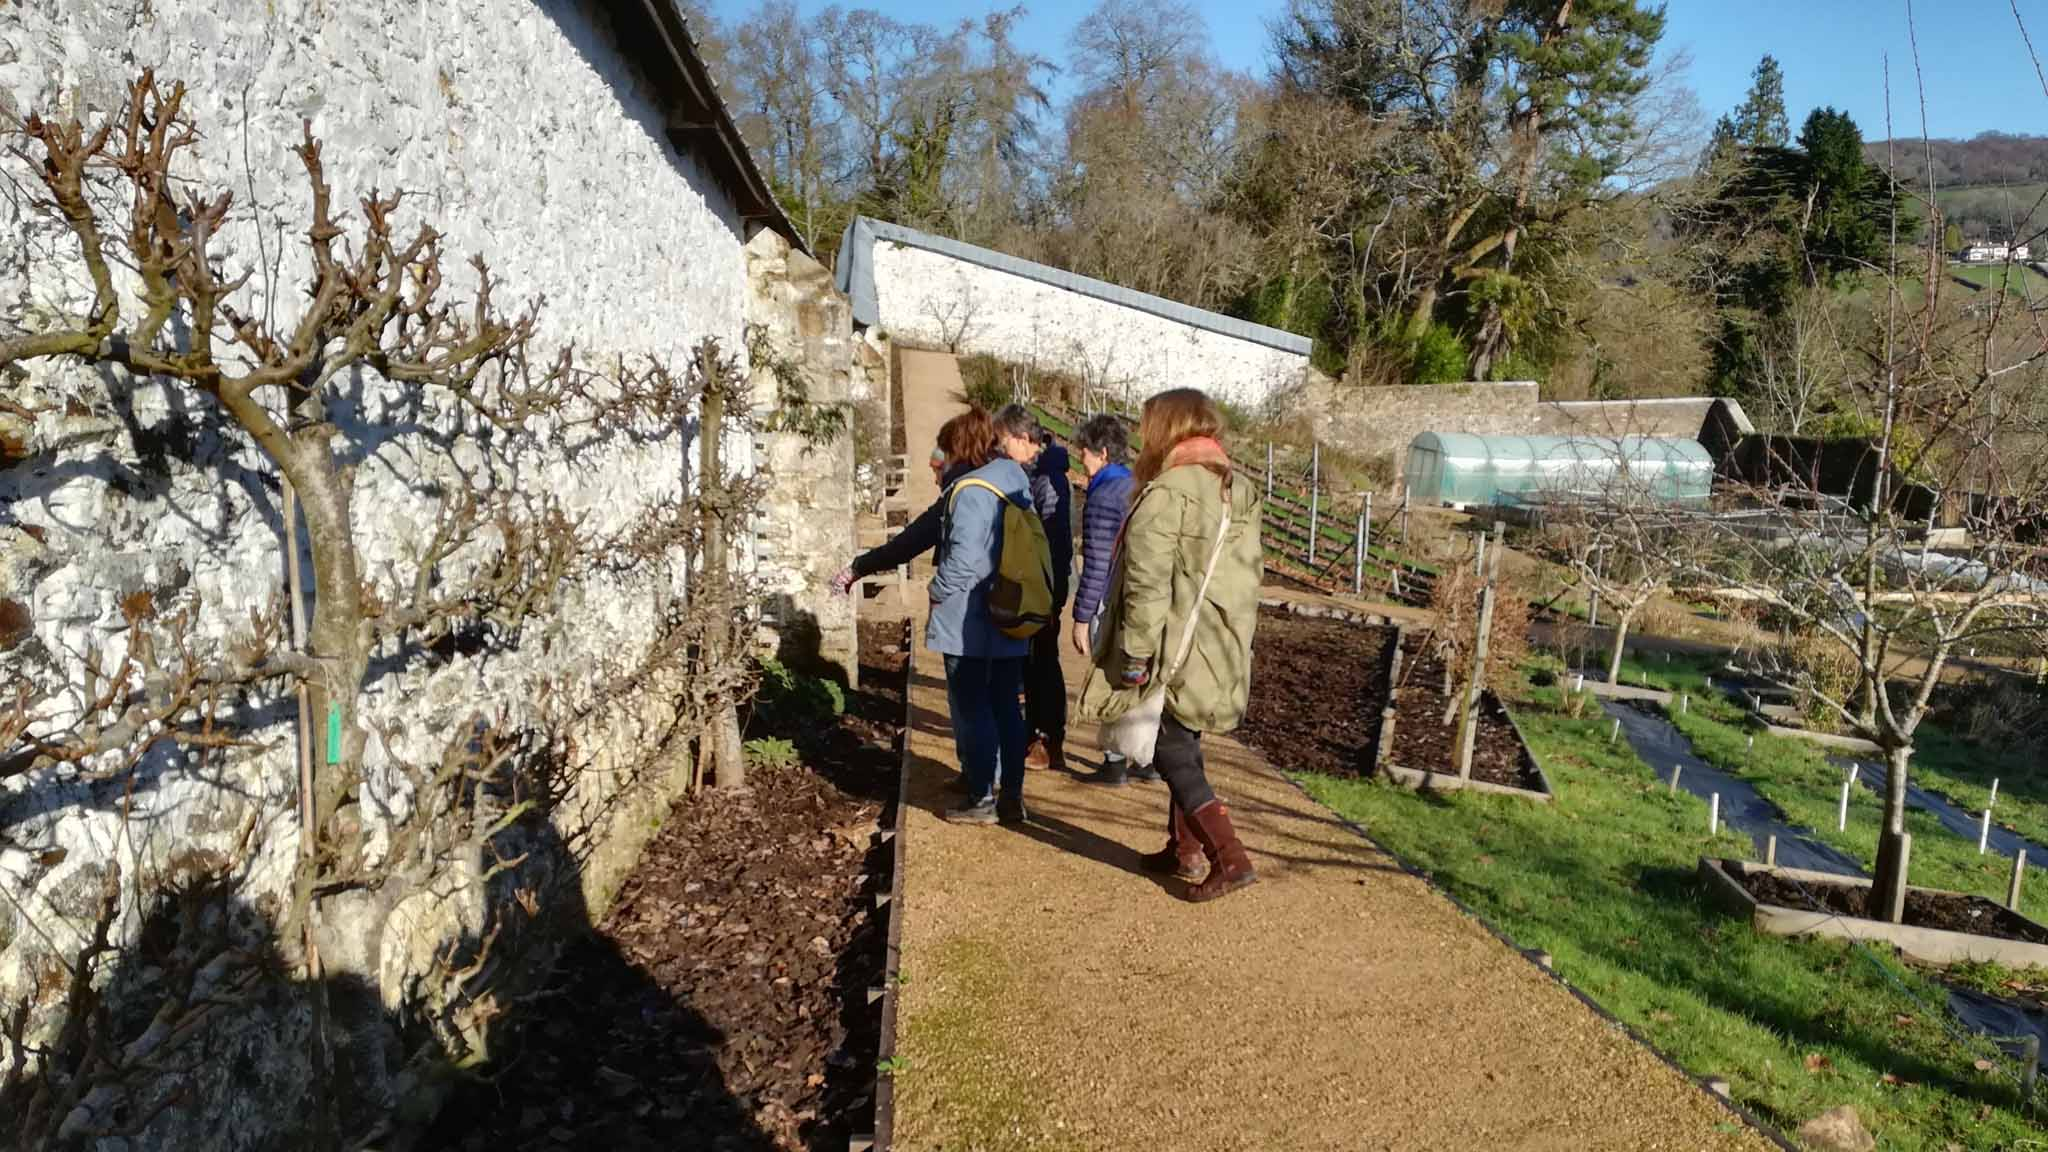 The Walled Garden volunteer team visit Parke in Bovey Tracey